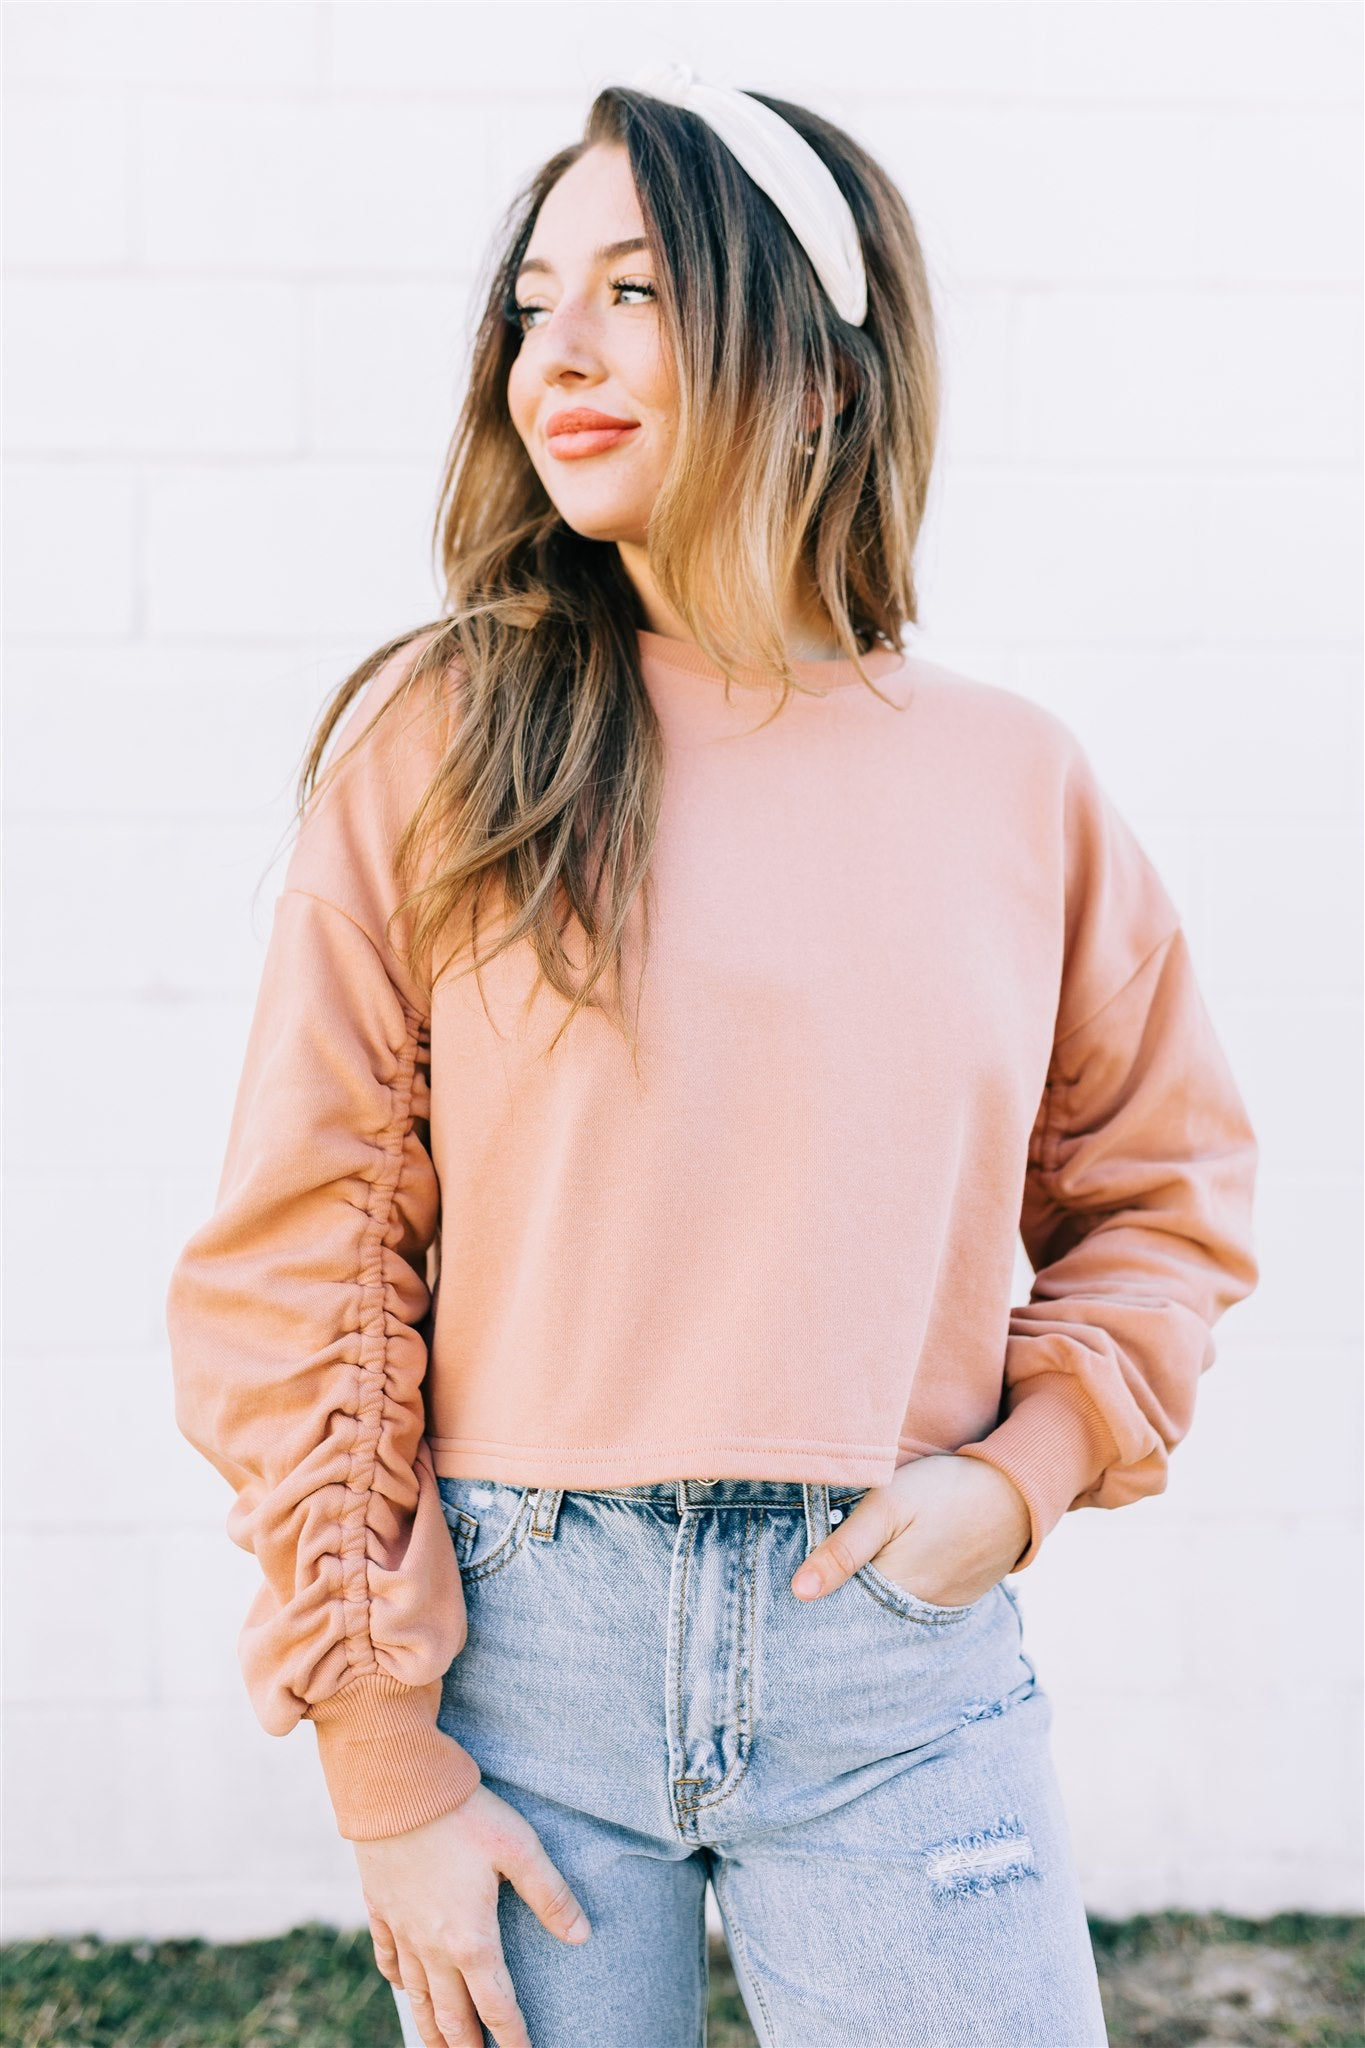 Running Late Sweatshirt Top